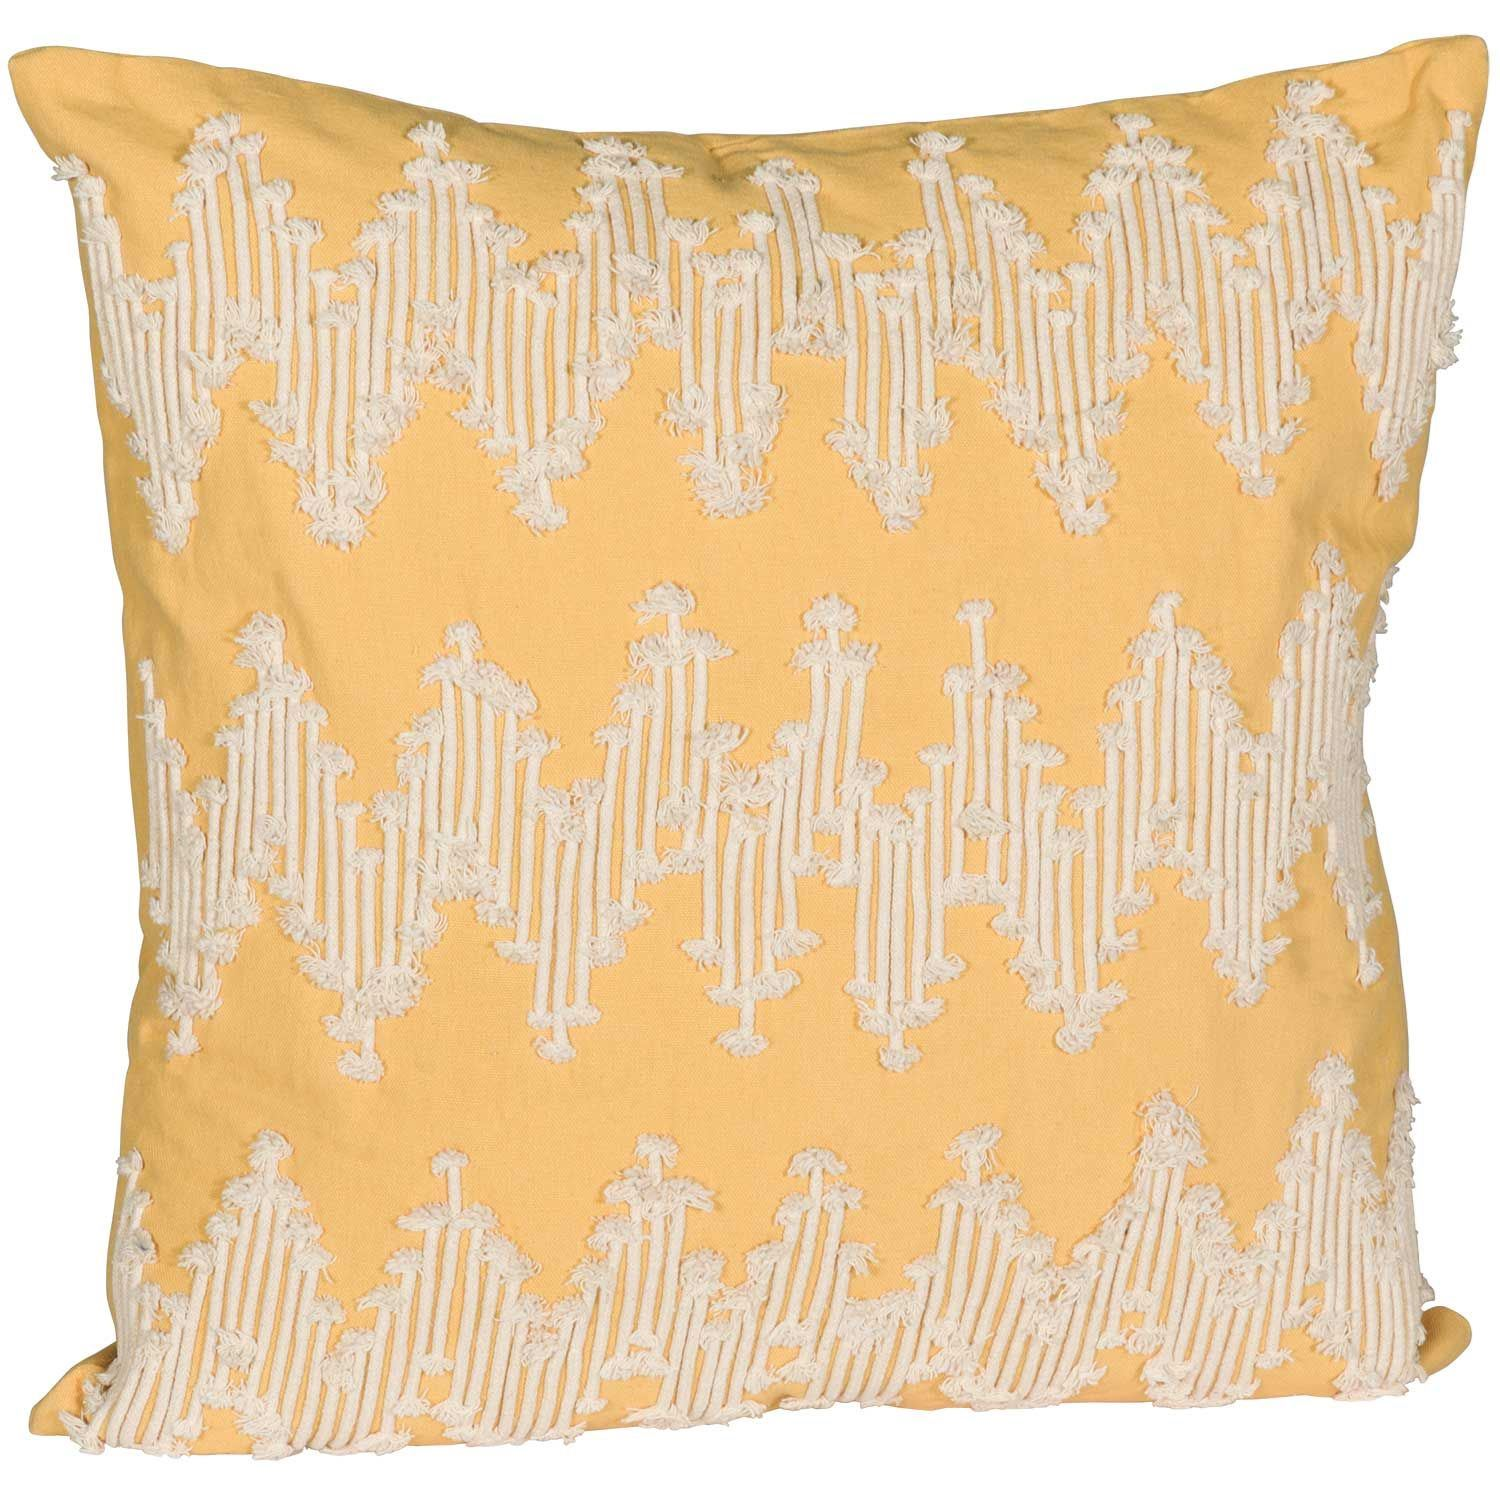 Picture of Chevy Sunshine 20X20 Decorative Pillow